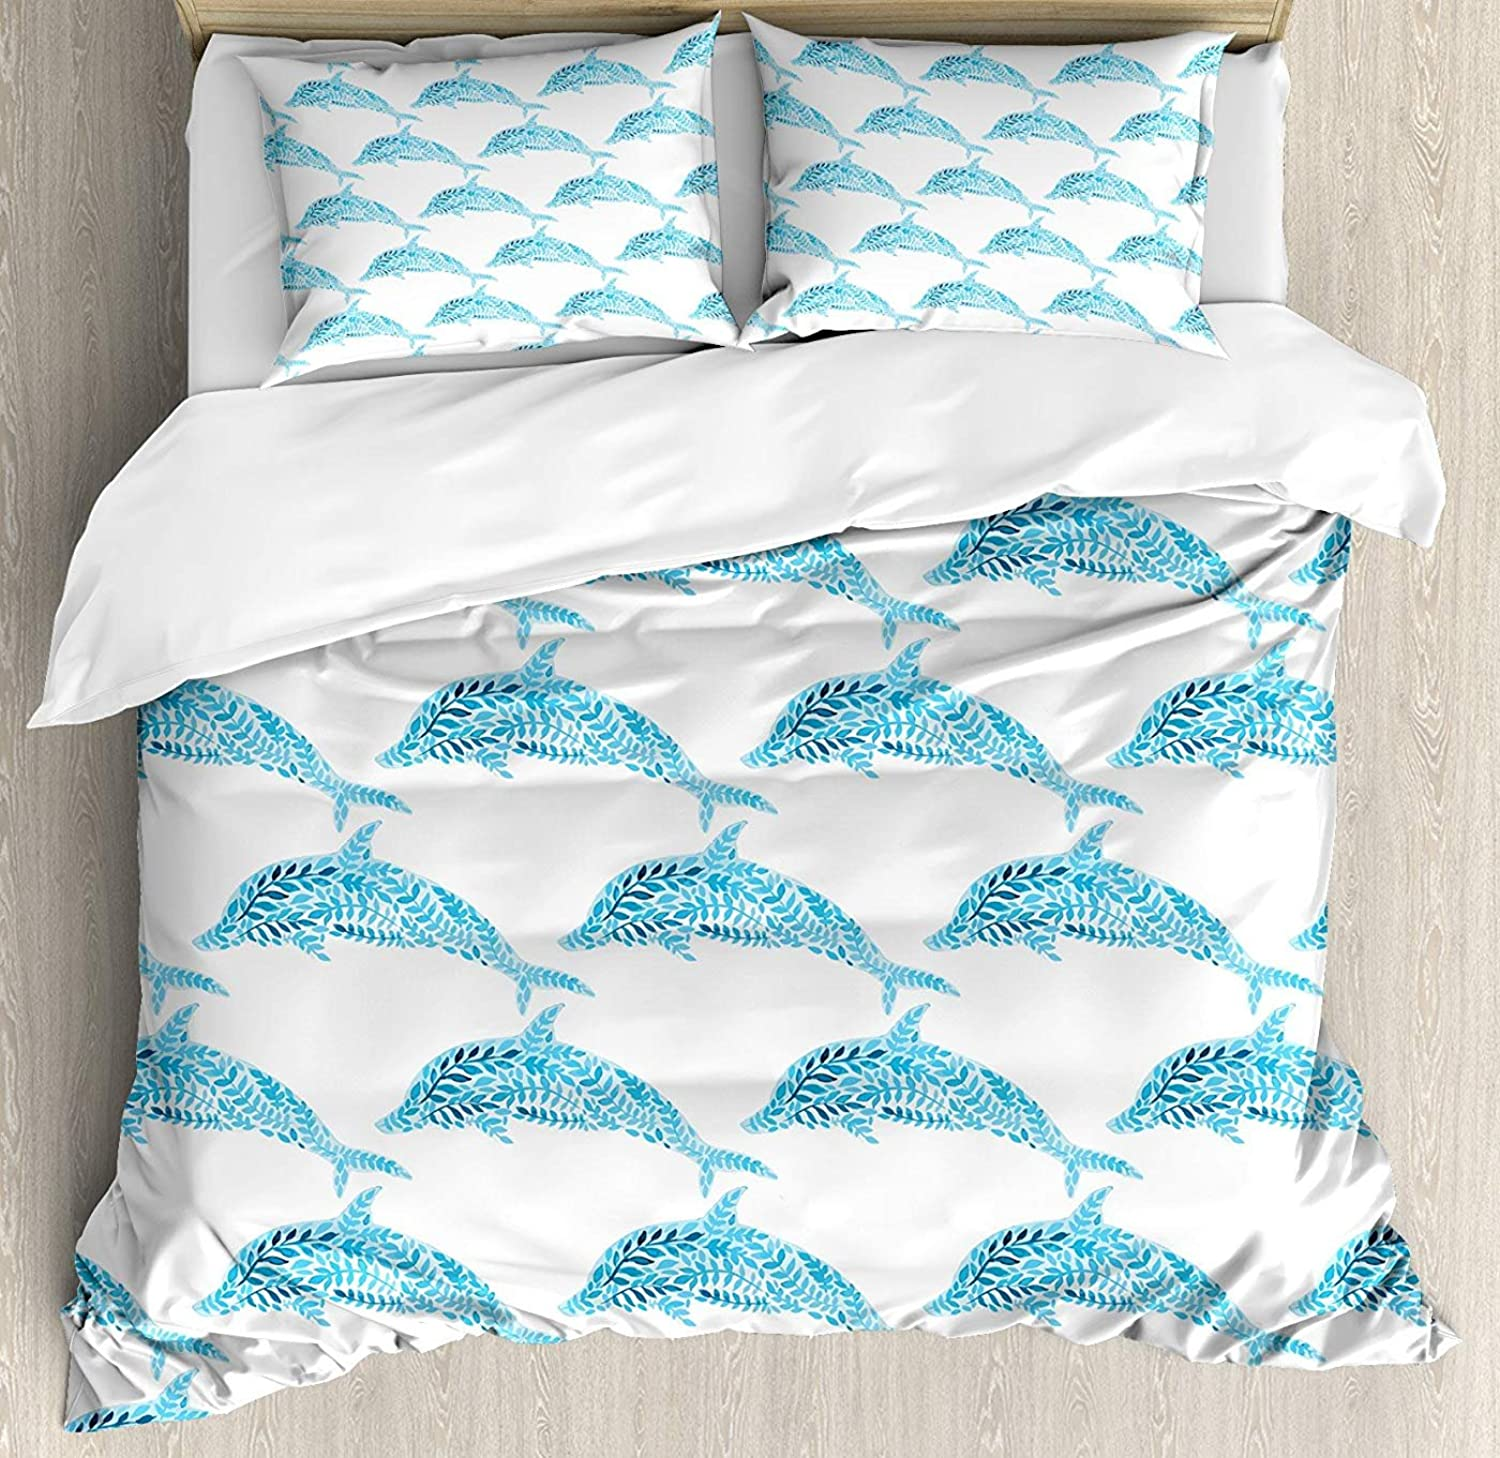 Sea Animals Duvet Cover Set Full Size, Aquatic Dolphin Figures with Leaf Ornamentals Abstract Artwork Playful Fish,Lightweight Microfiber Duvet Cover Sets, bluee White